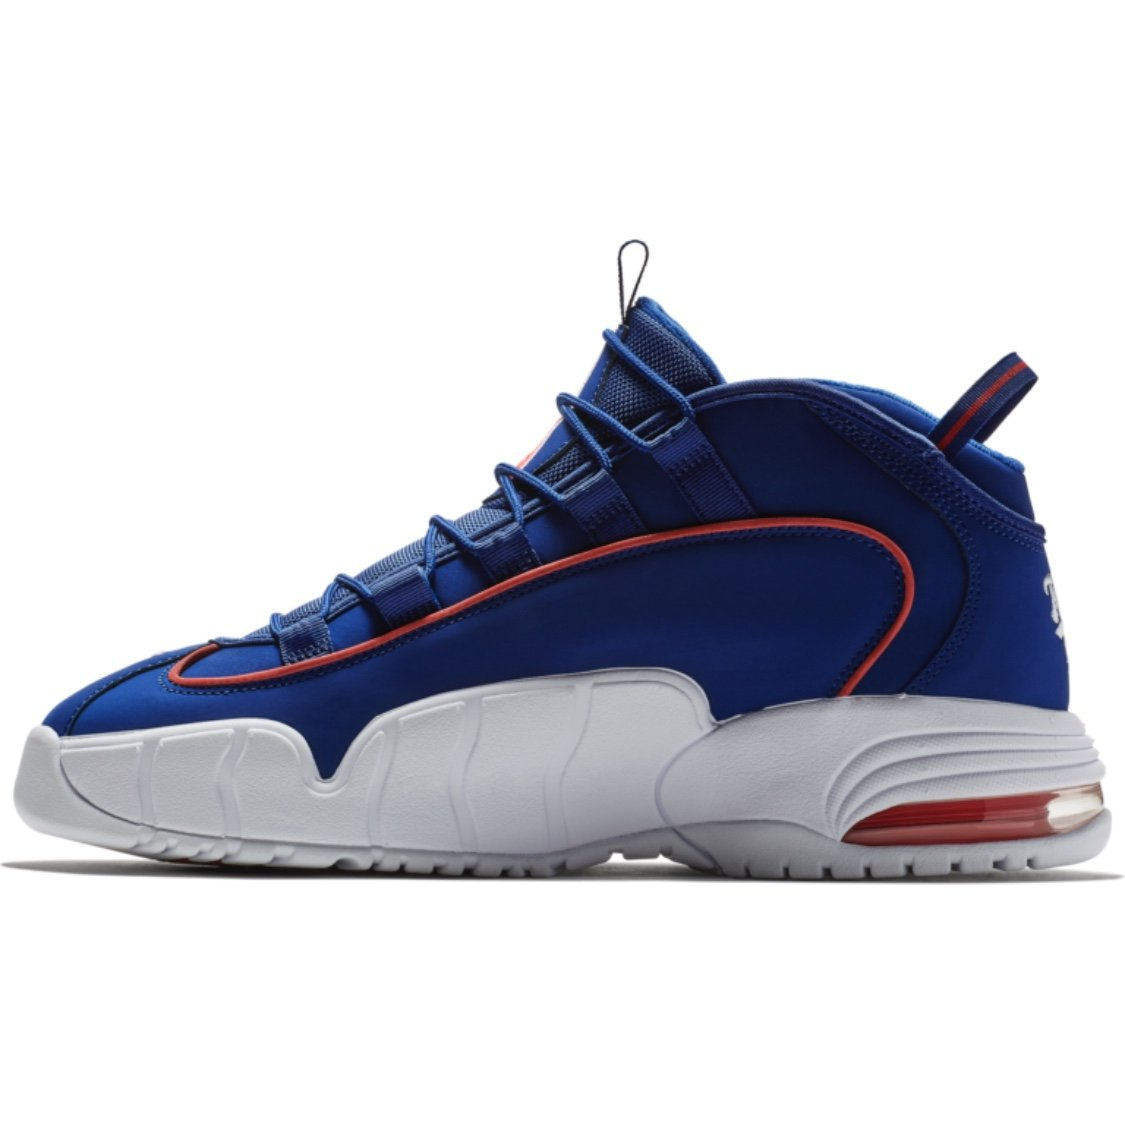 nike-air-max-penny-1-lil-penny-685153-400-release-20180630